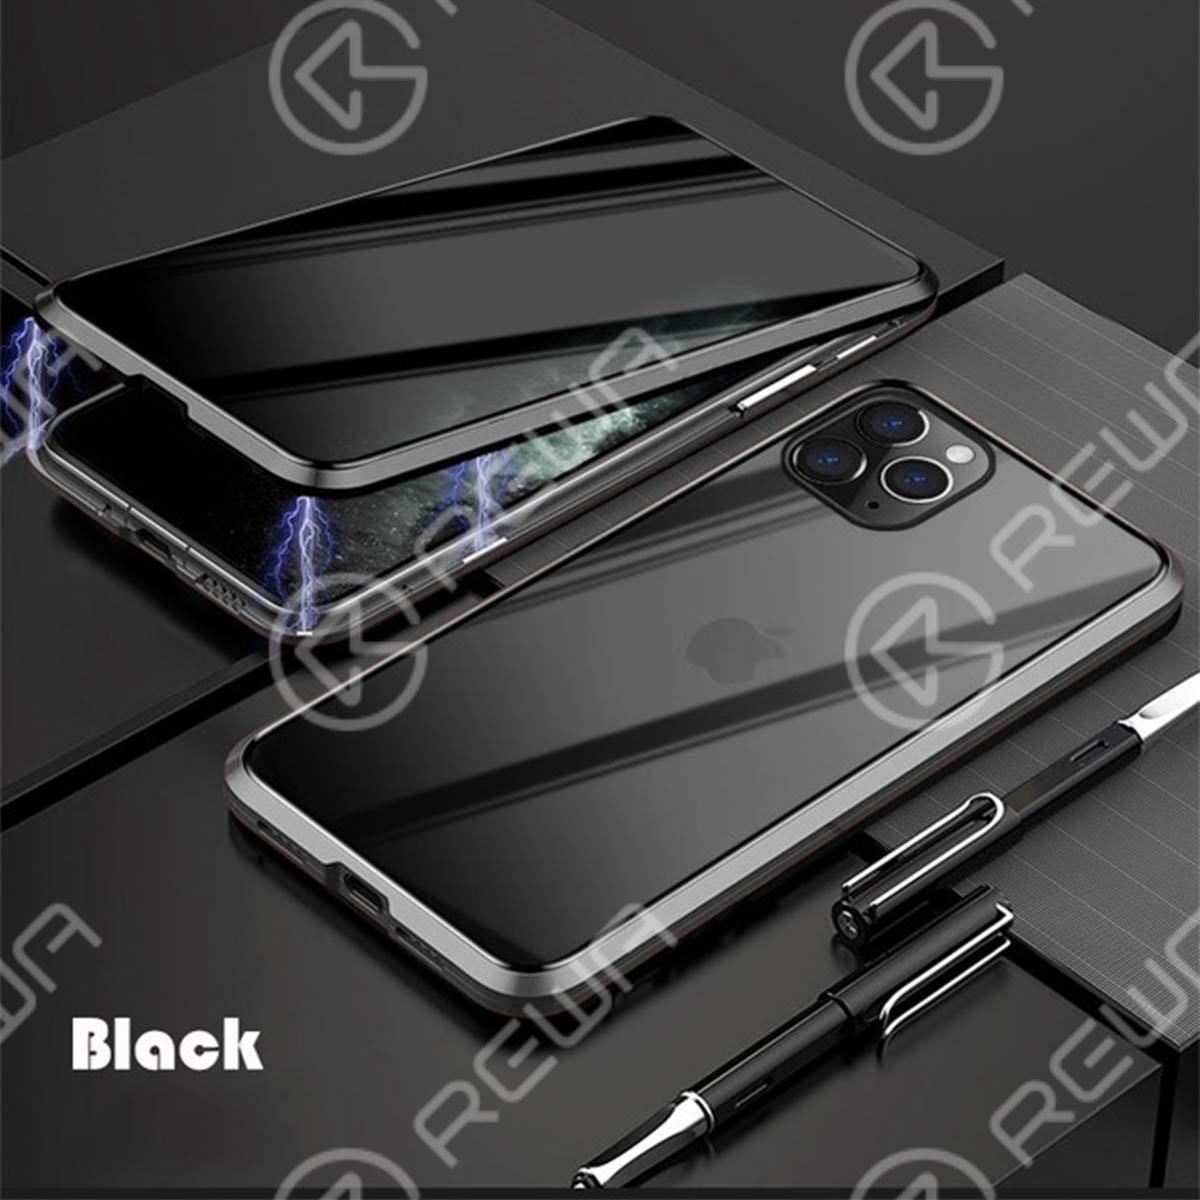 Magnet Double-Sided Privacy Glass Protective Phone Case For iPhone 7-12 Pro Max (Black)